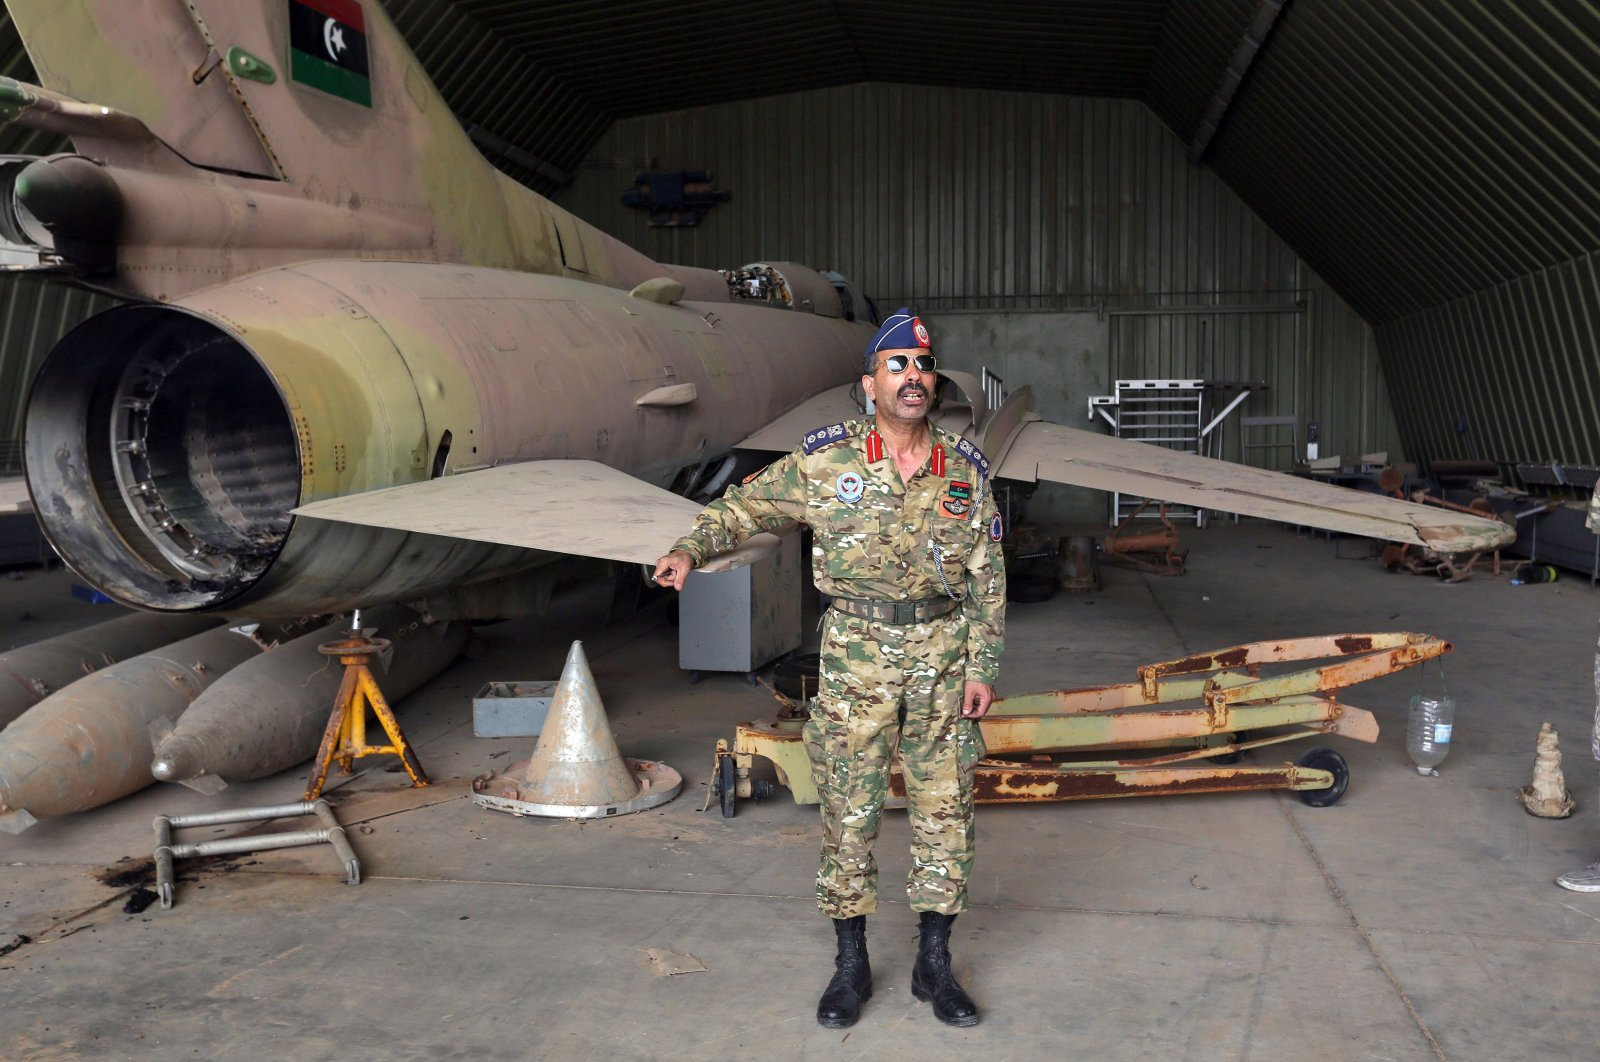 Group Capt. Muhammad Qanunu, the military spokesperson of Libya's internationally recognized government, stands by a partially disassembled MiG-23 aircraft after seizing Al-Watiya air base, southwest of the capital Tripoli, May 18, 2020. (AFP Photo)